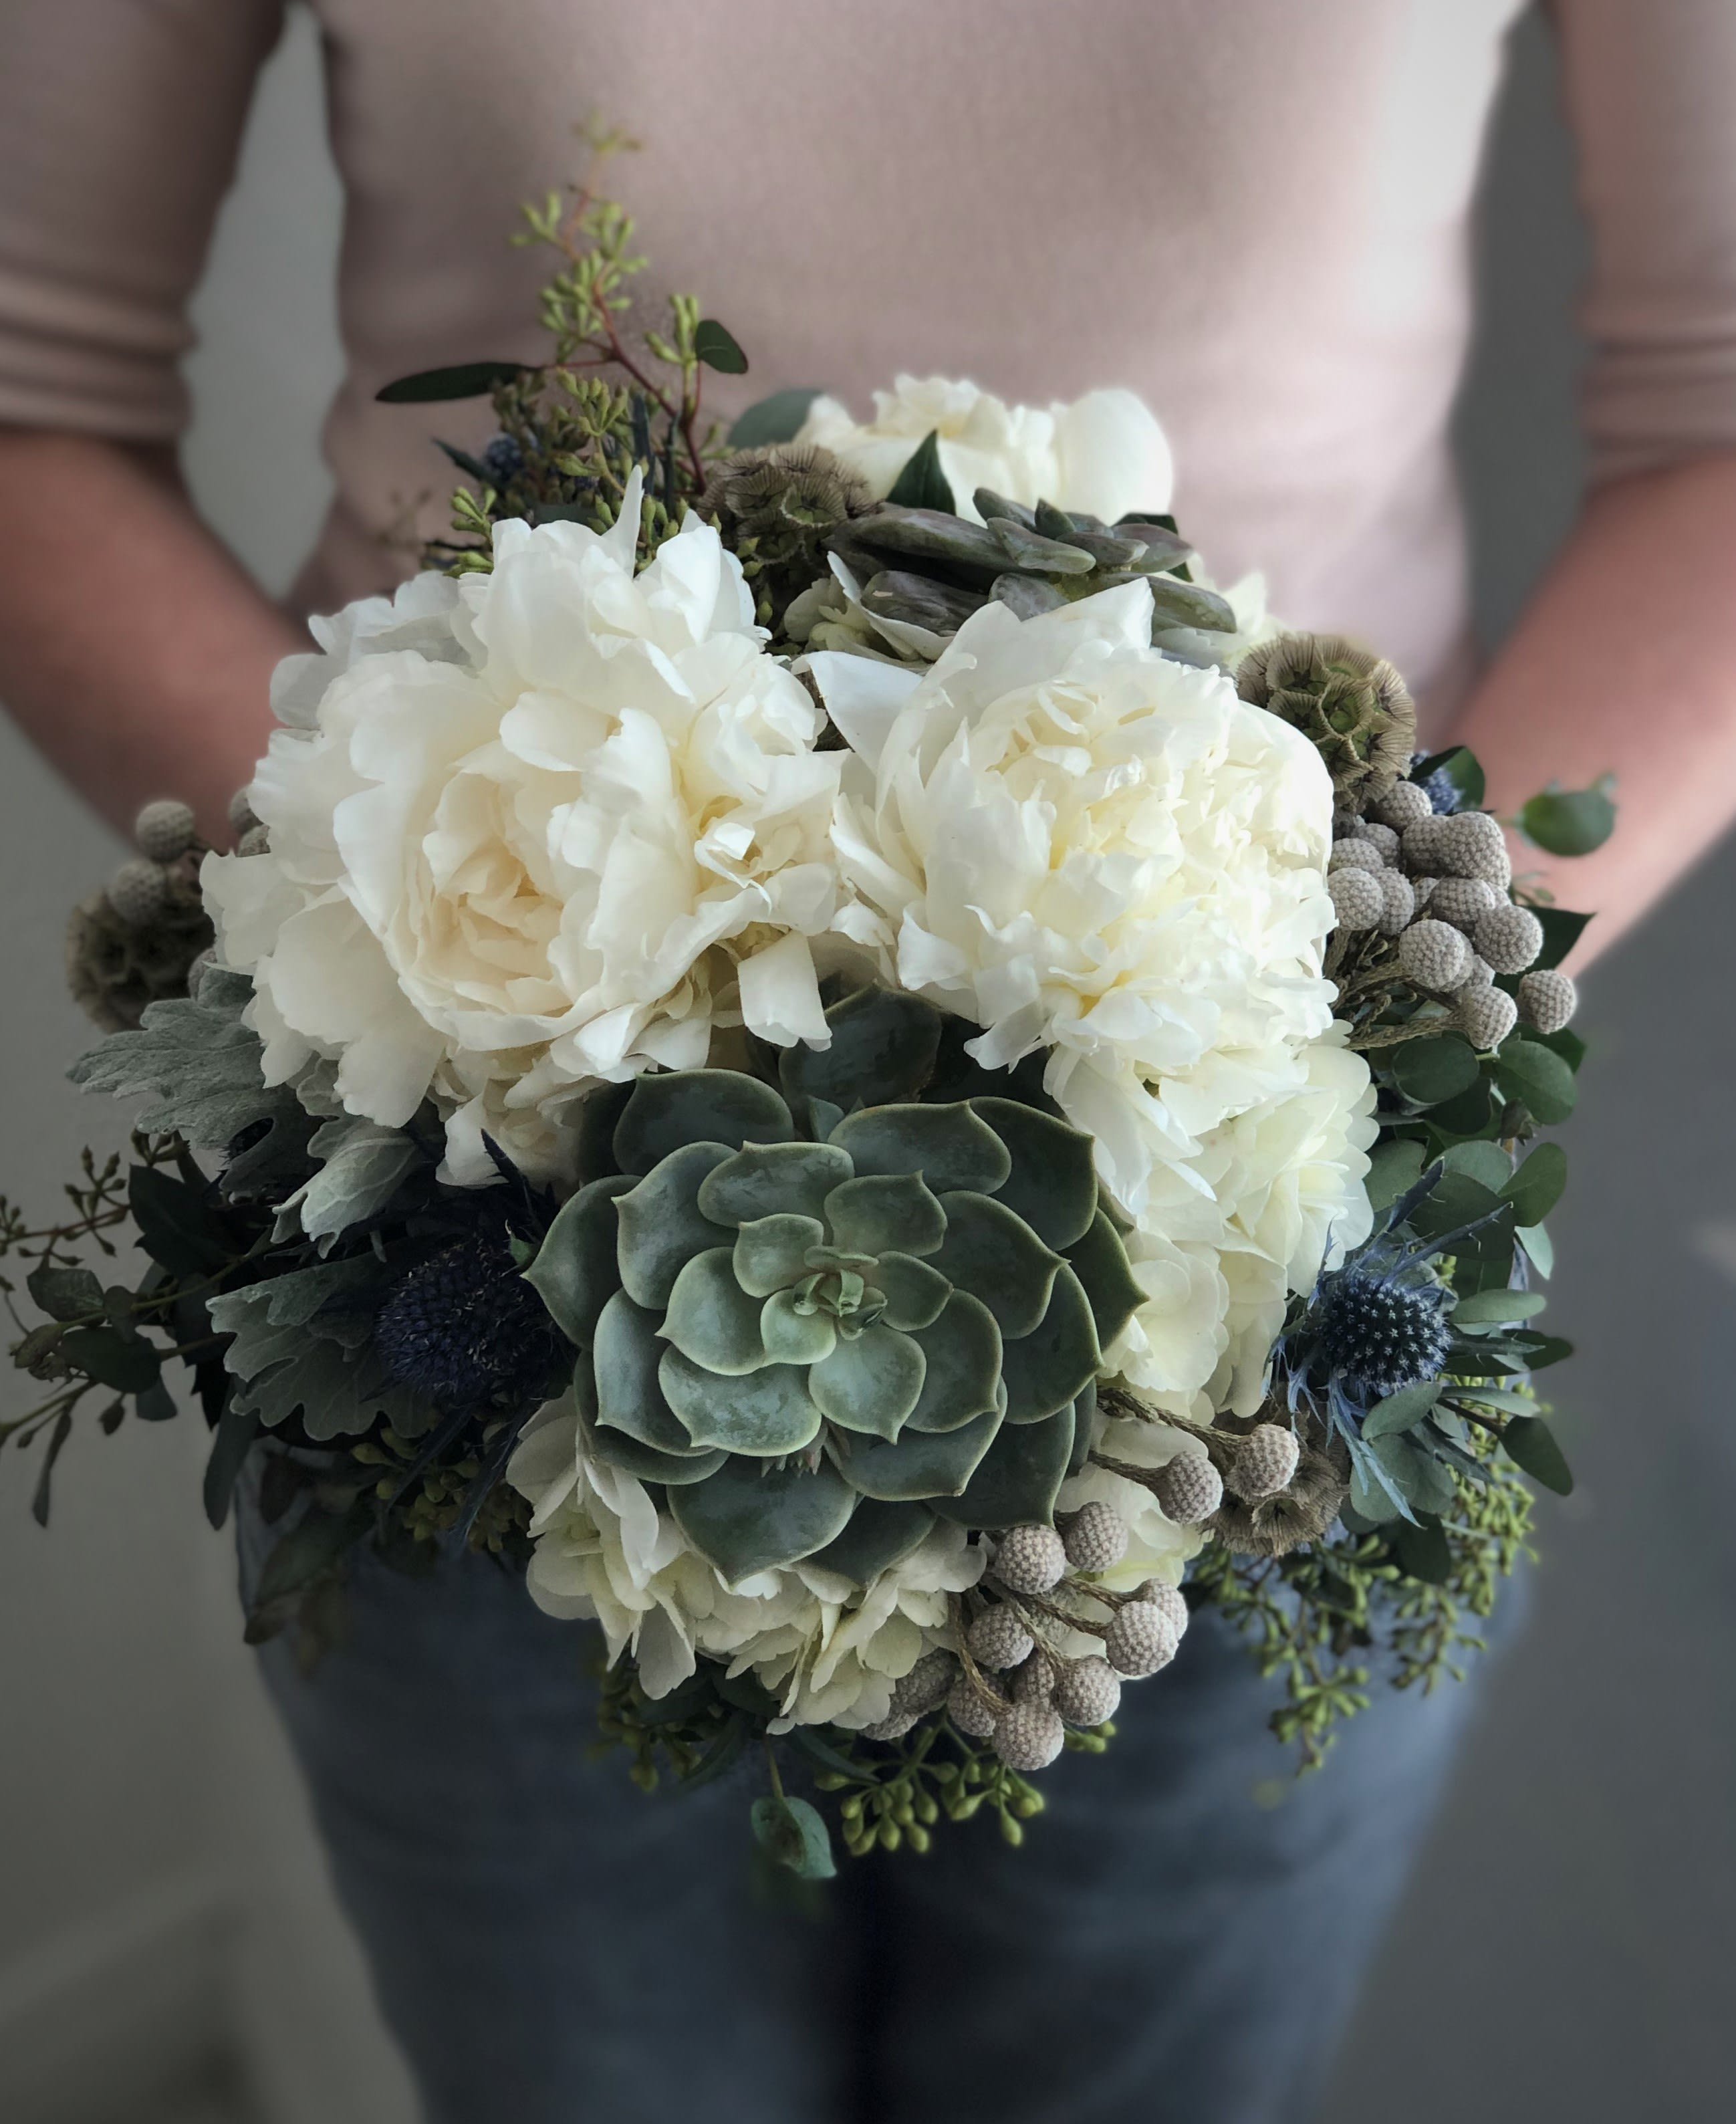 Bridal Bouquet Images Cheaper Than Retail Price Buy Clothing Accessories And Lifestyle Products For Women Men